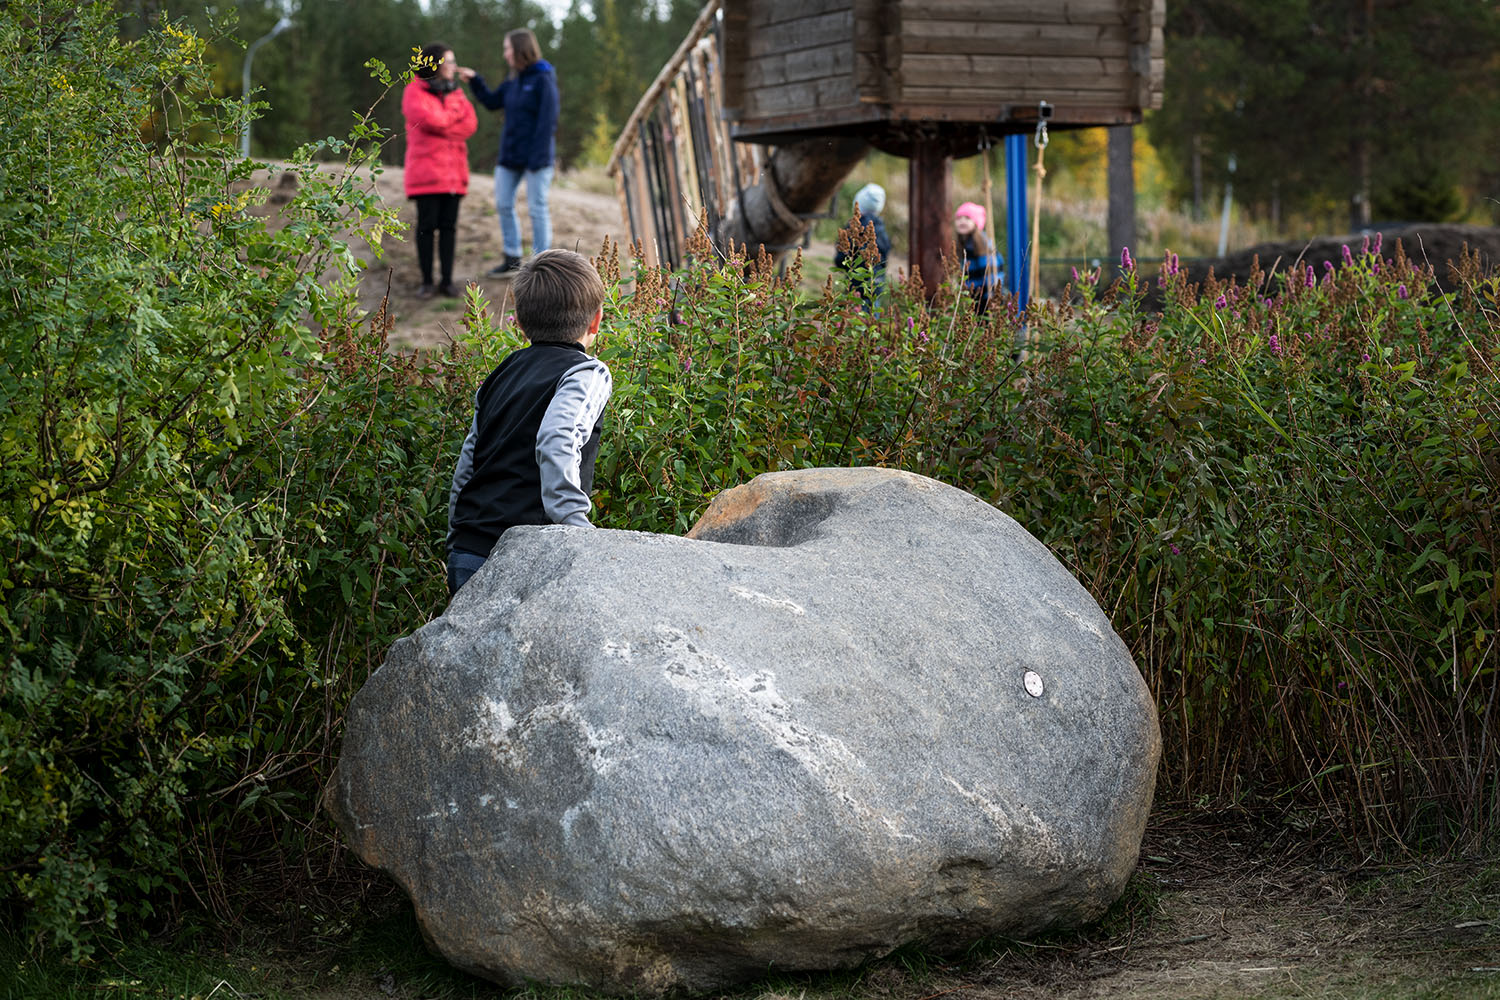 Small boy on a stone in front of a kindergarten.